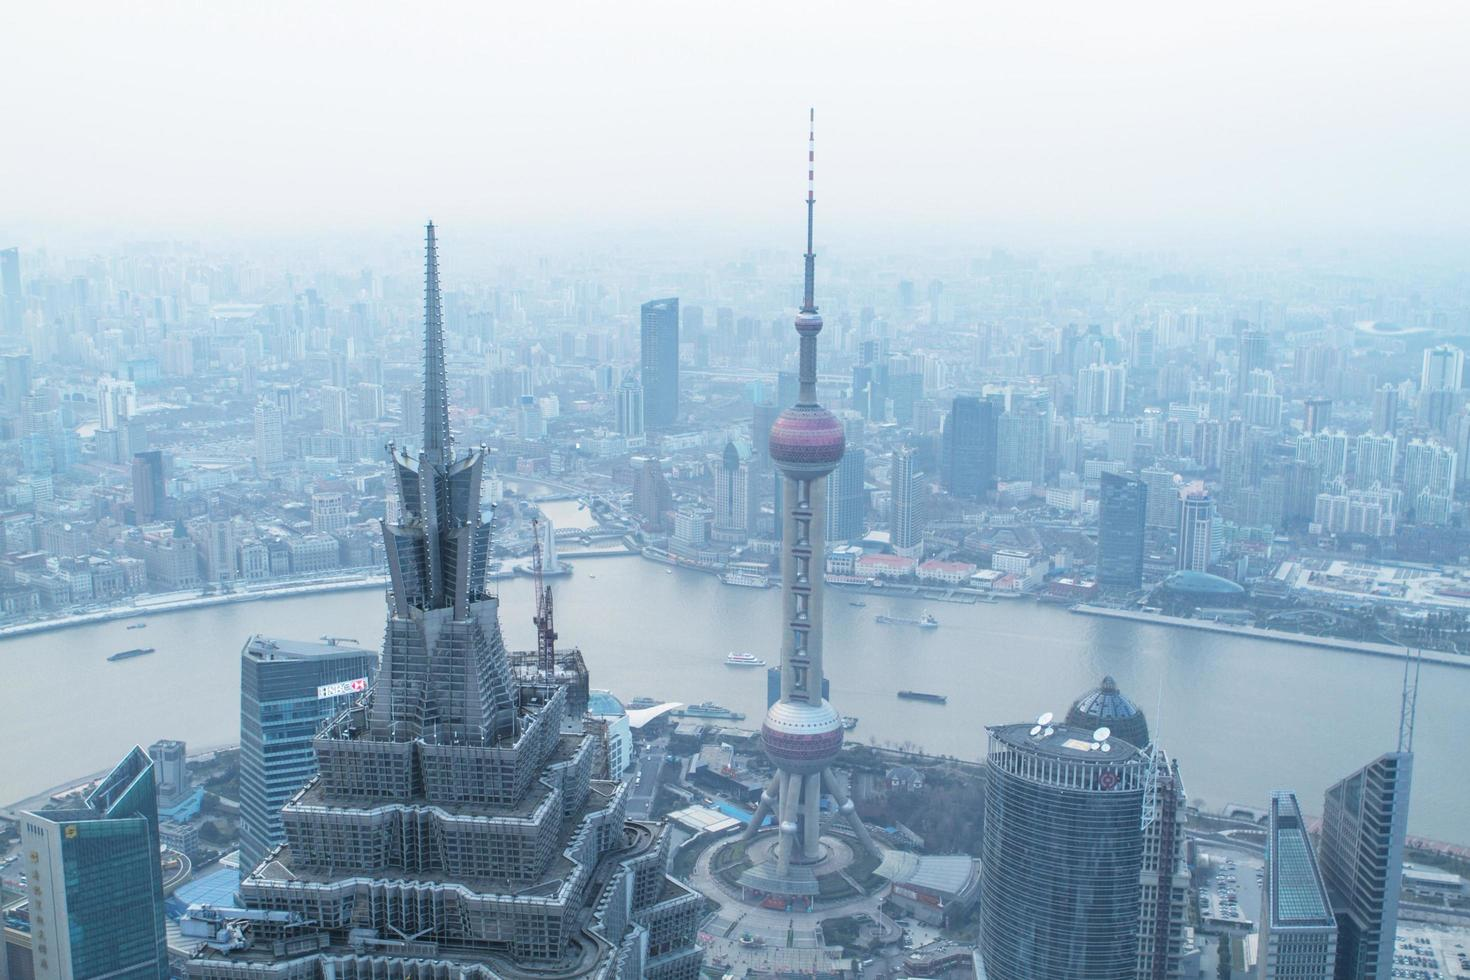 Shanghai, China, 2020 - Aerial view of the Oriental Pearl Tower photo